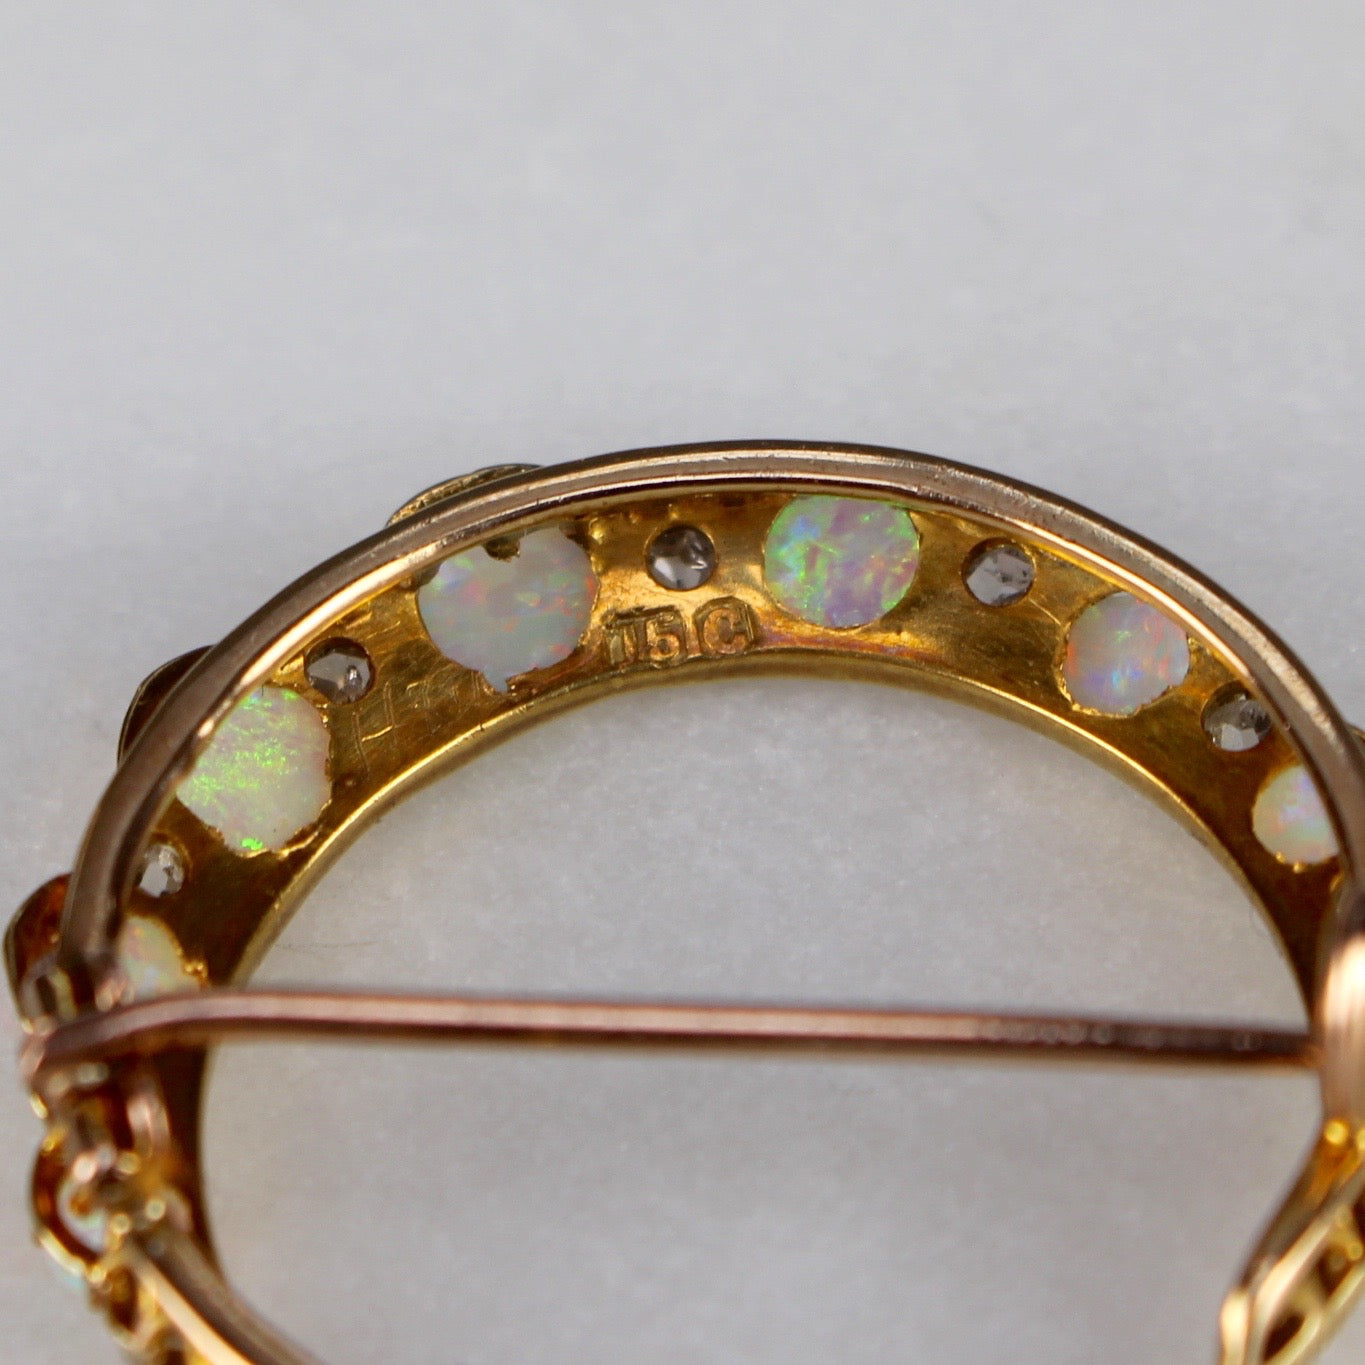 Opal and Diamond Brooch (Early 20th Century)